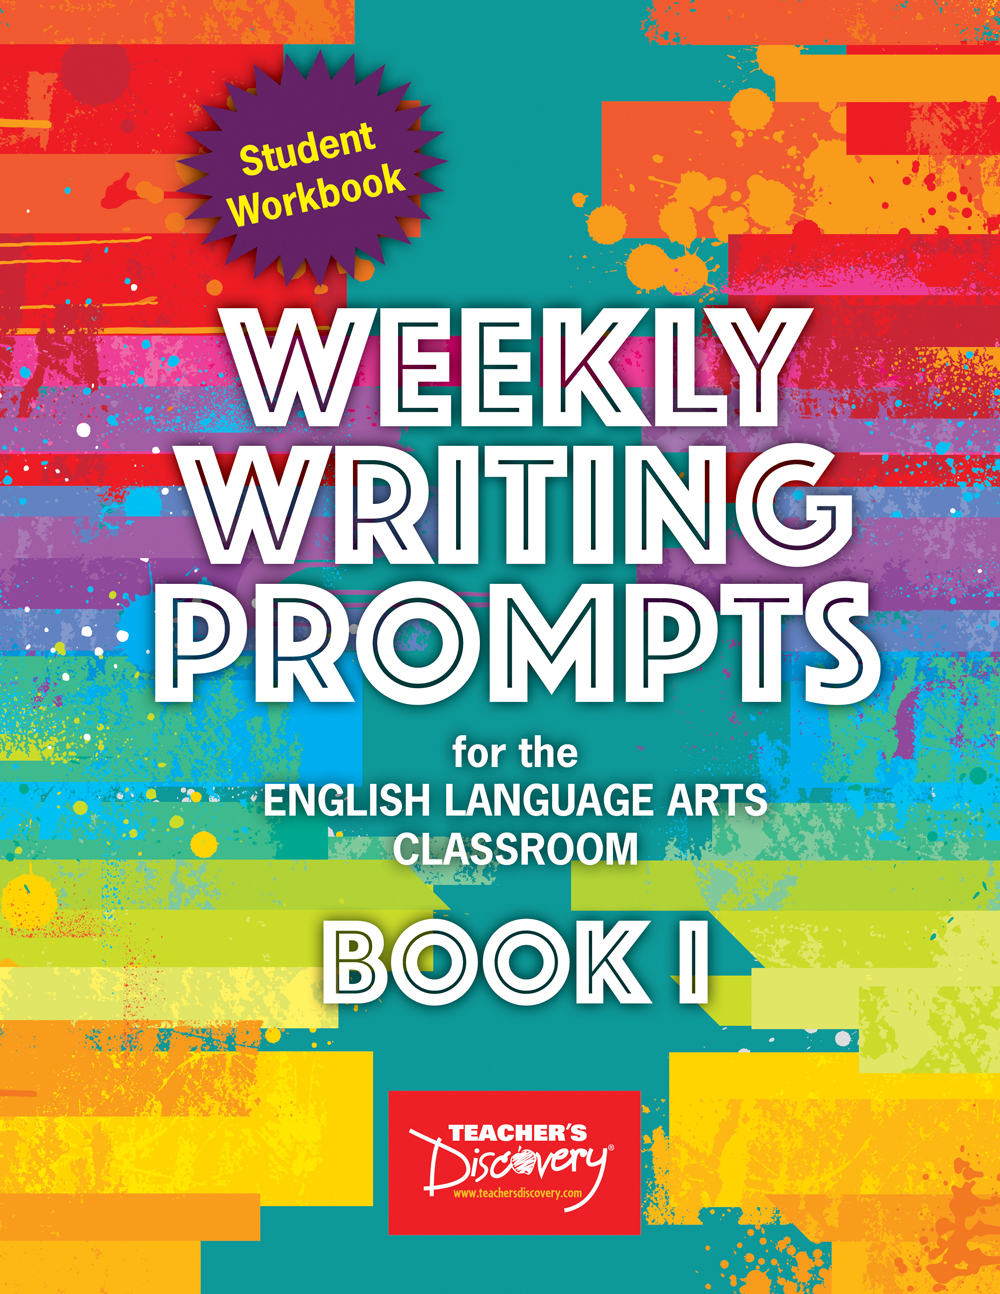 Weekly Writing Prompts for the English Language Arts Classroom Book I Student Workbook Set of 15 s